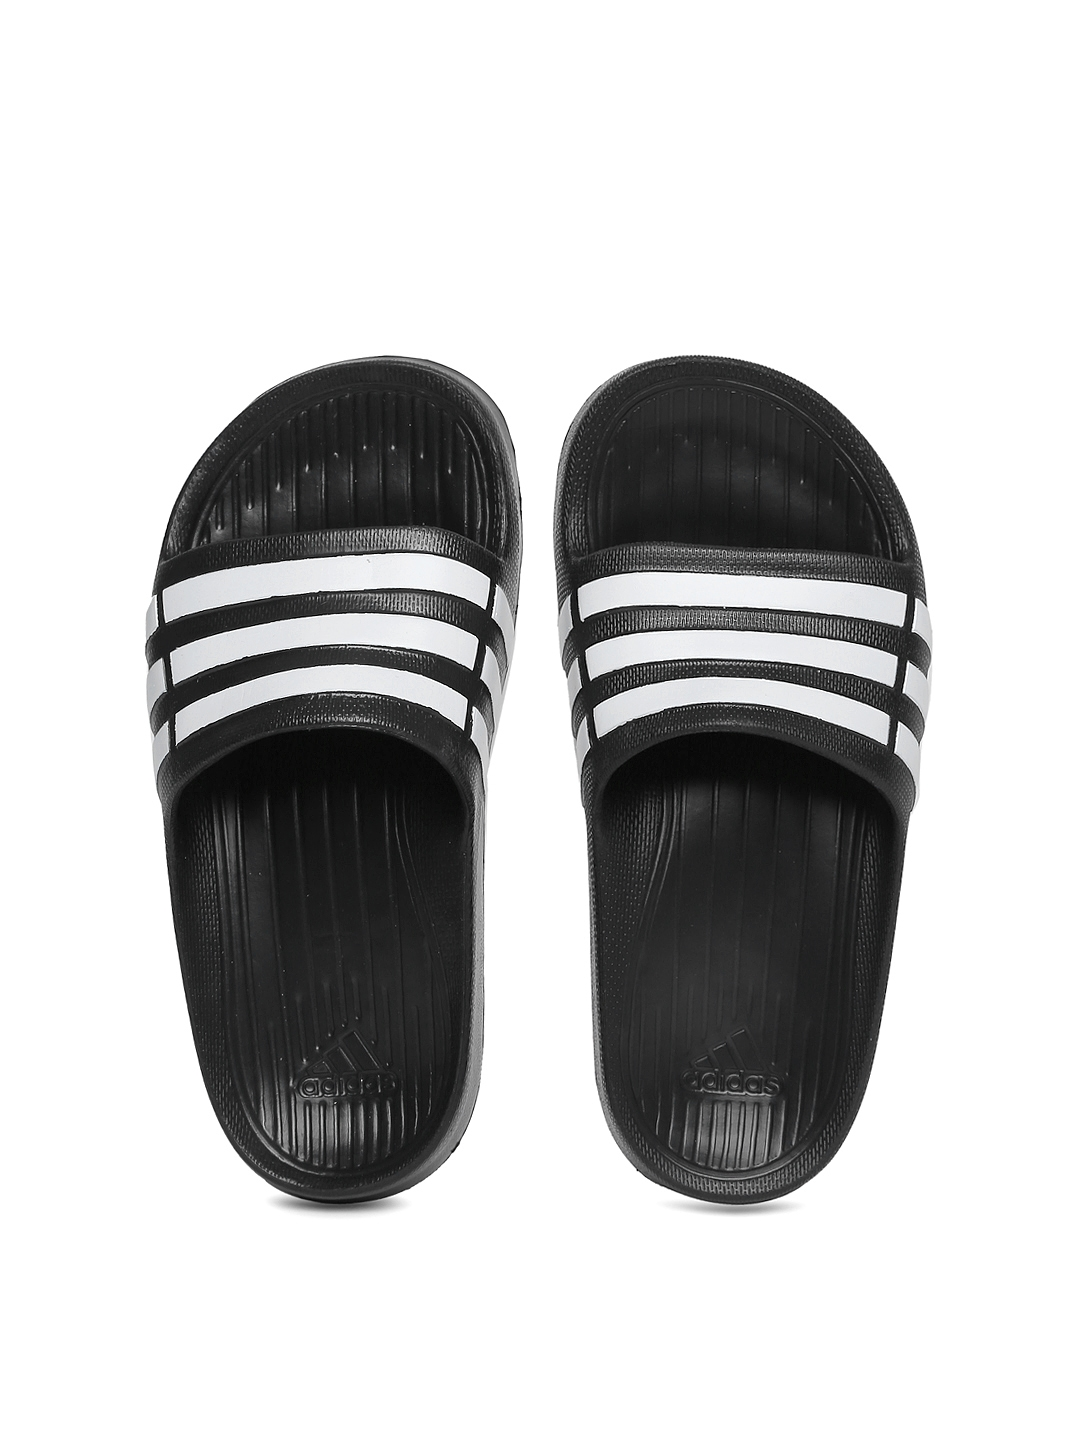 83bbc44f74d940 Buy ADIDAS Boys Black   White Duramo Slide K Striped Flip Flops - Flip Flops  for Boys 1731276